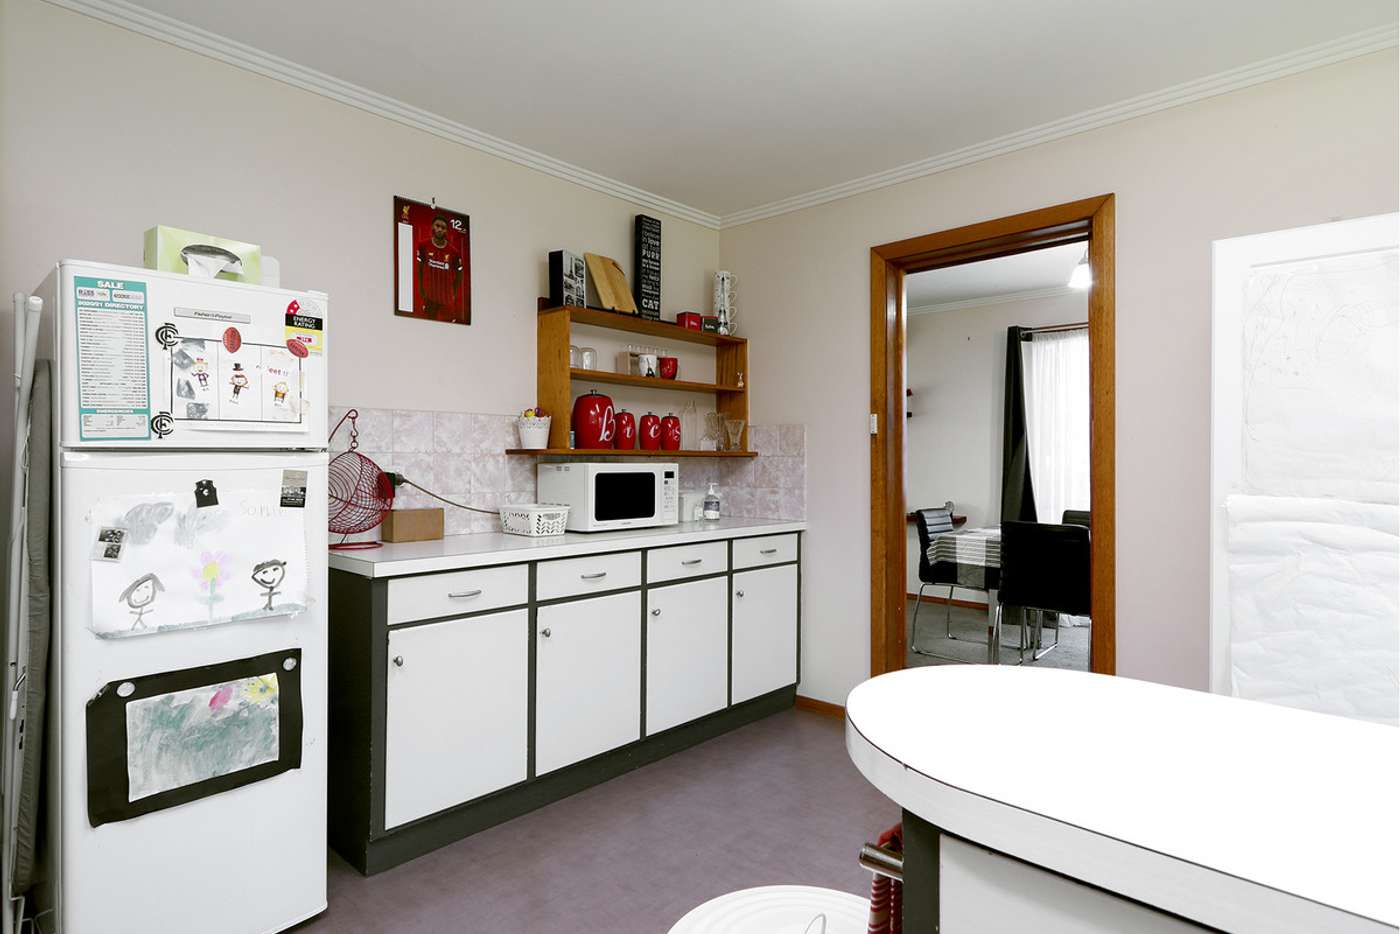 Sixth view of Homely house listing, 371 York Street, Sale VIC 3850